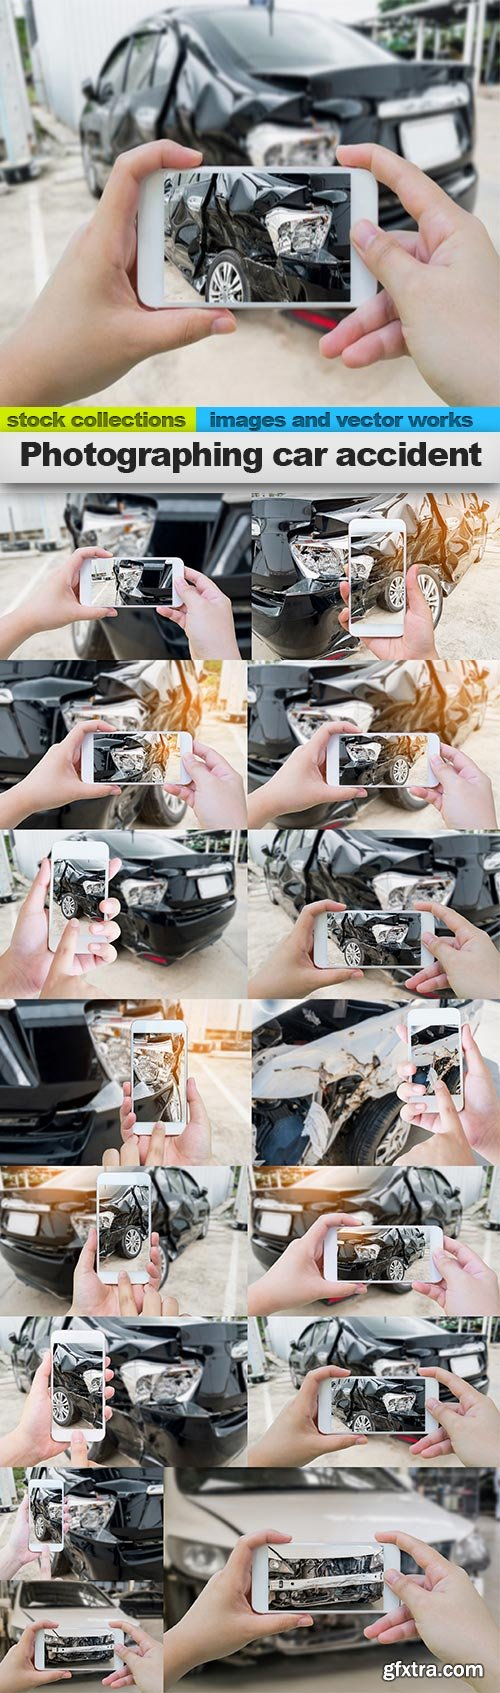 Photographing car accident, 15 x UHQ JPEG